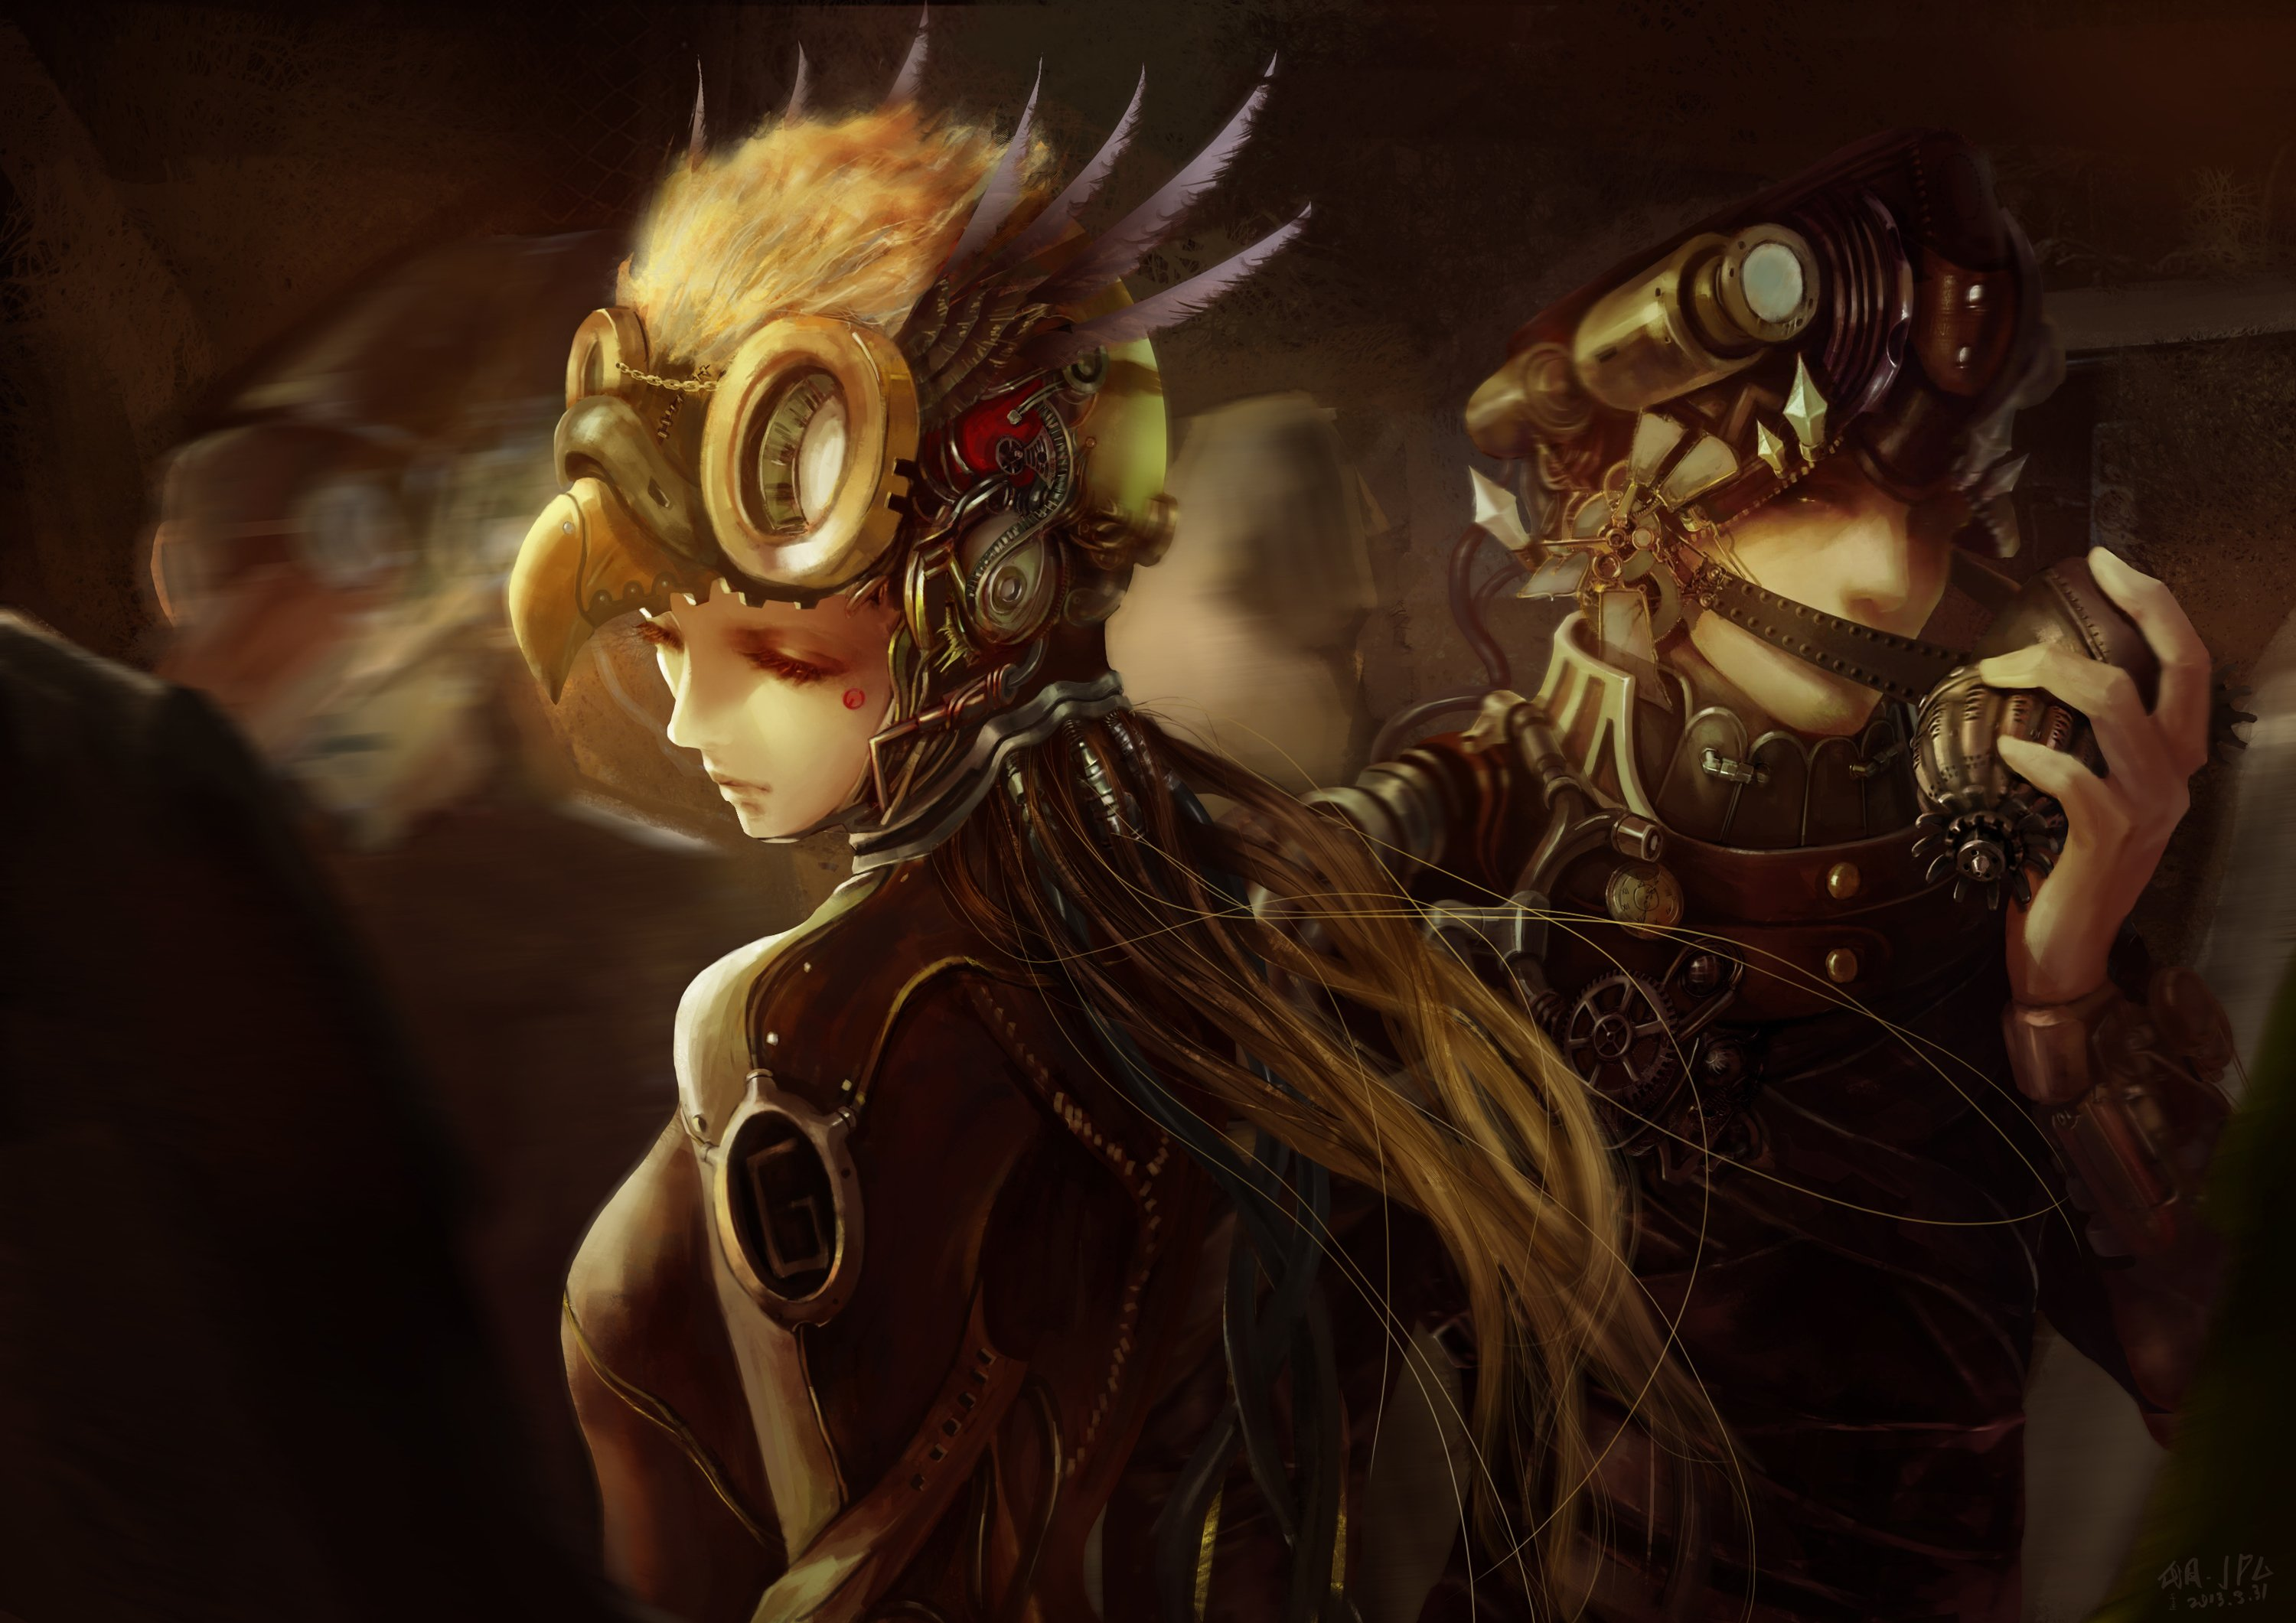 Steampunk Anime Wallpapers   Hot Girls Wallpaper 3000x2121